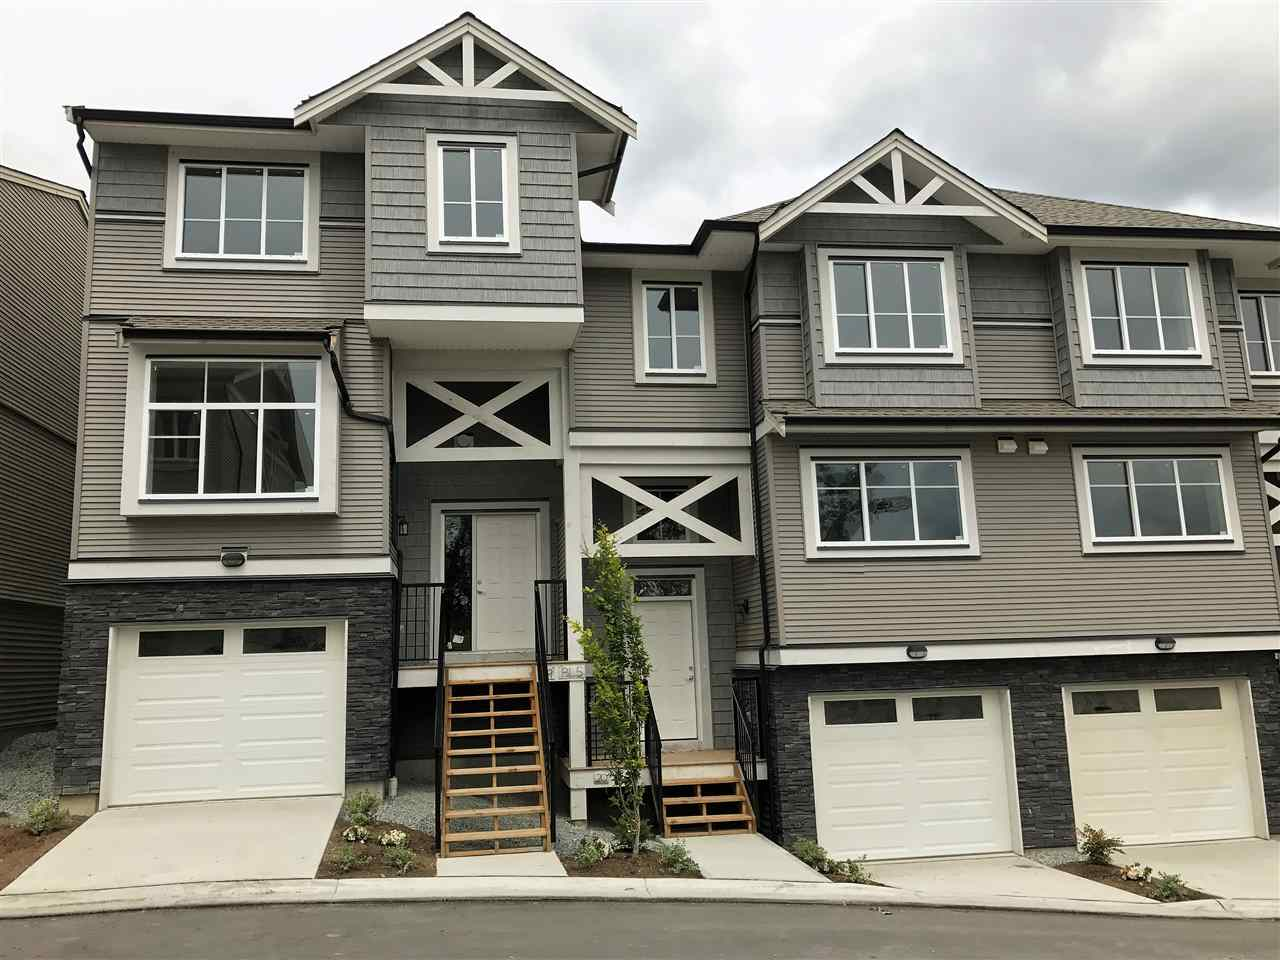 19 11252 COTTONWOOD STREET, Maple Ridge